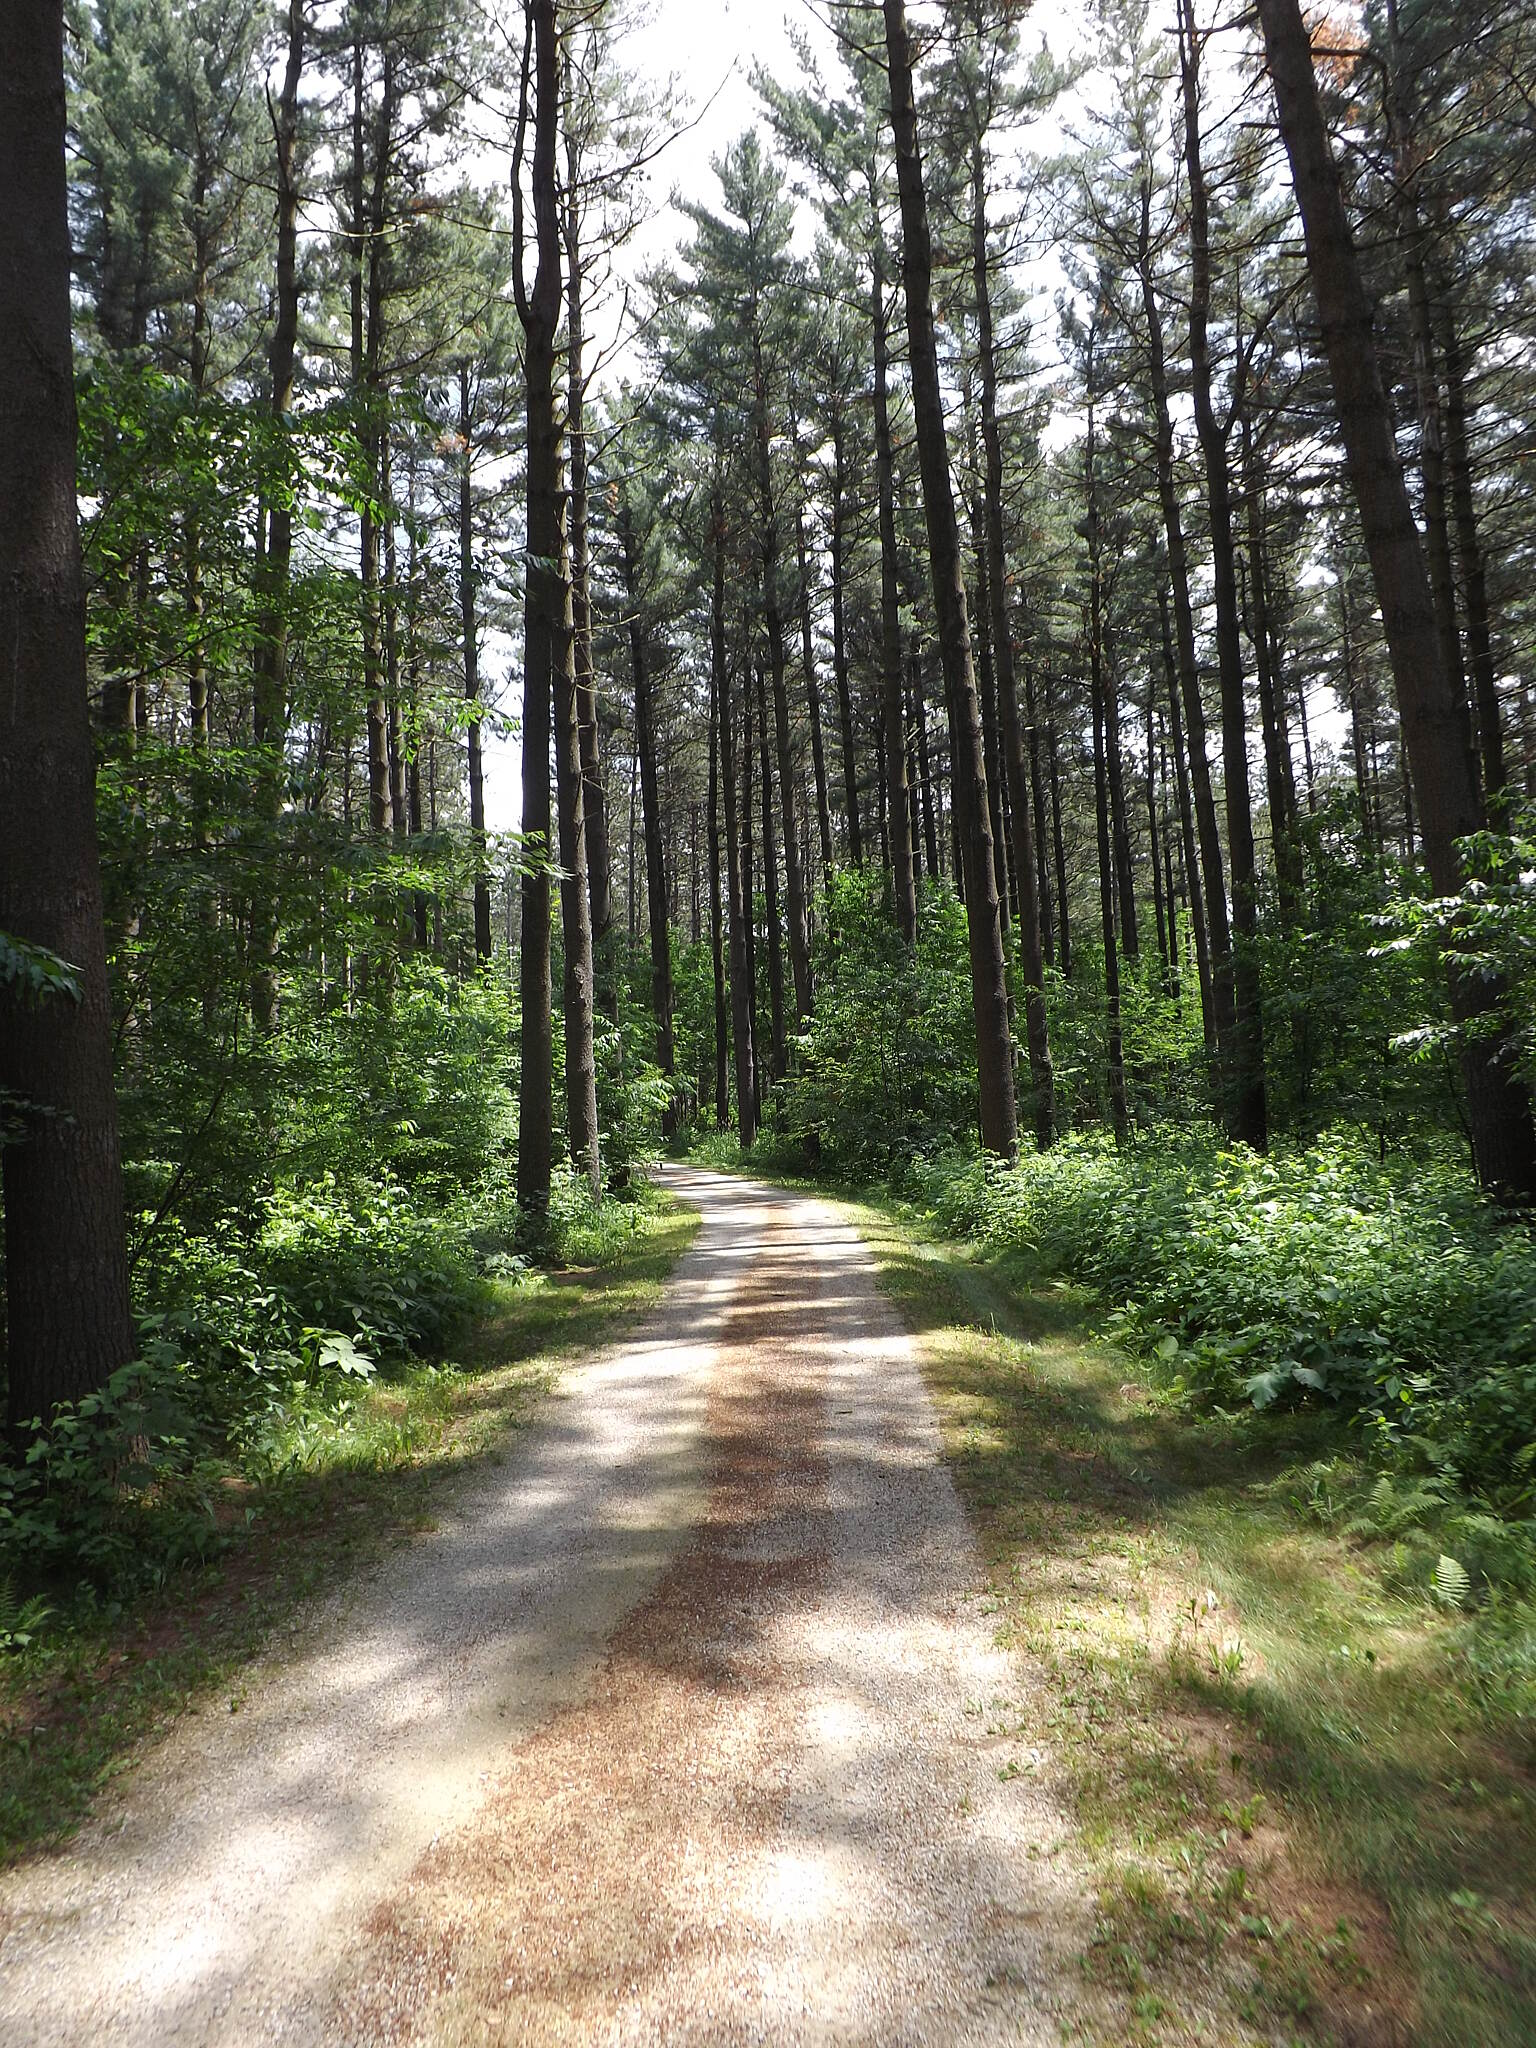 Lake to Lake Bike Trail (WI) Through Pine Forest As you approach Mauthe Lake, the trail passes through a pine forest.